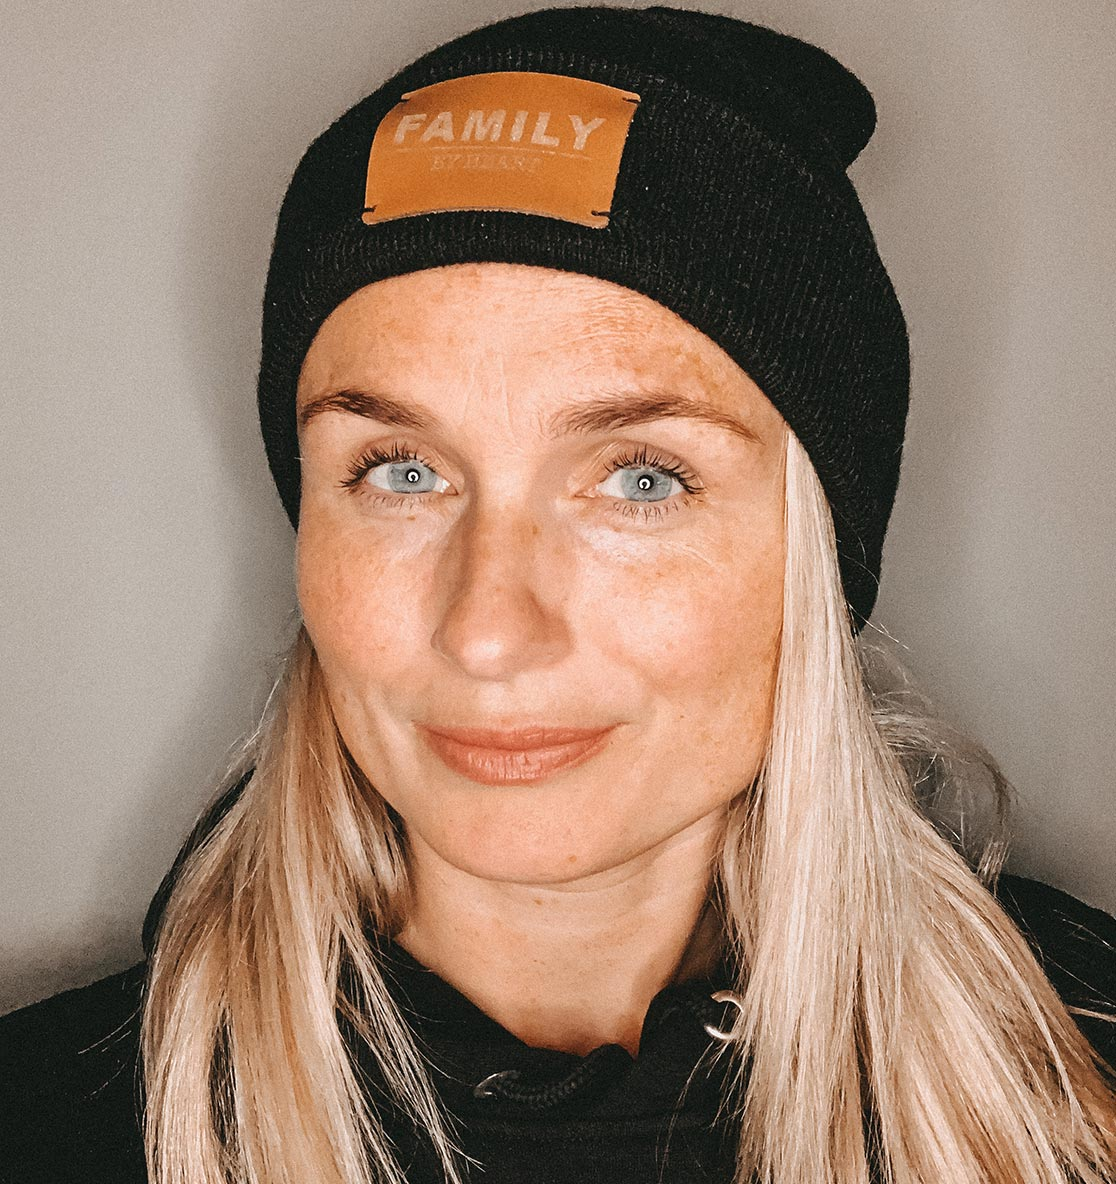 Individualisiertes Produkt: Unisex Beanie mit dem Label eurer Wahl: FAMILY BY HEART, MOM BY HEART ODER MOM❤︎ - FAMILY BY HEART